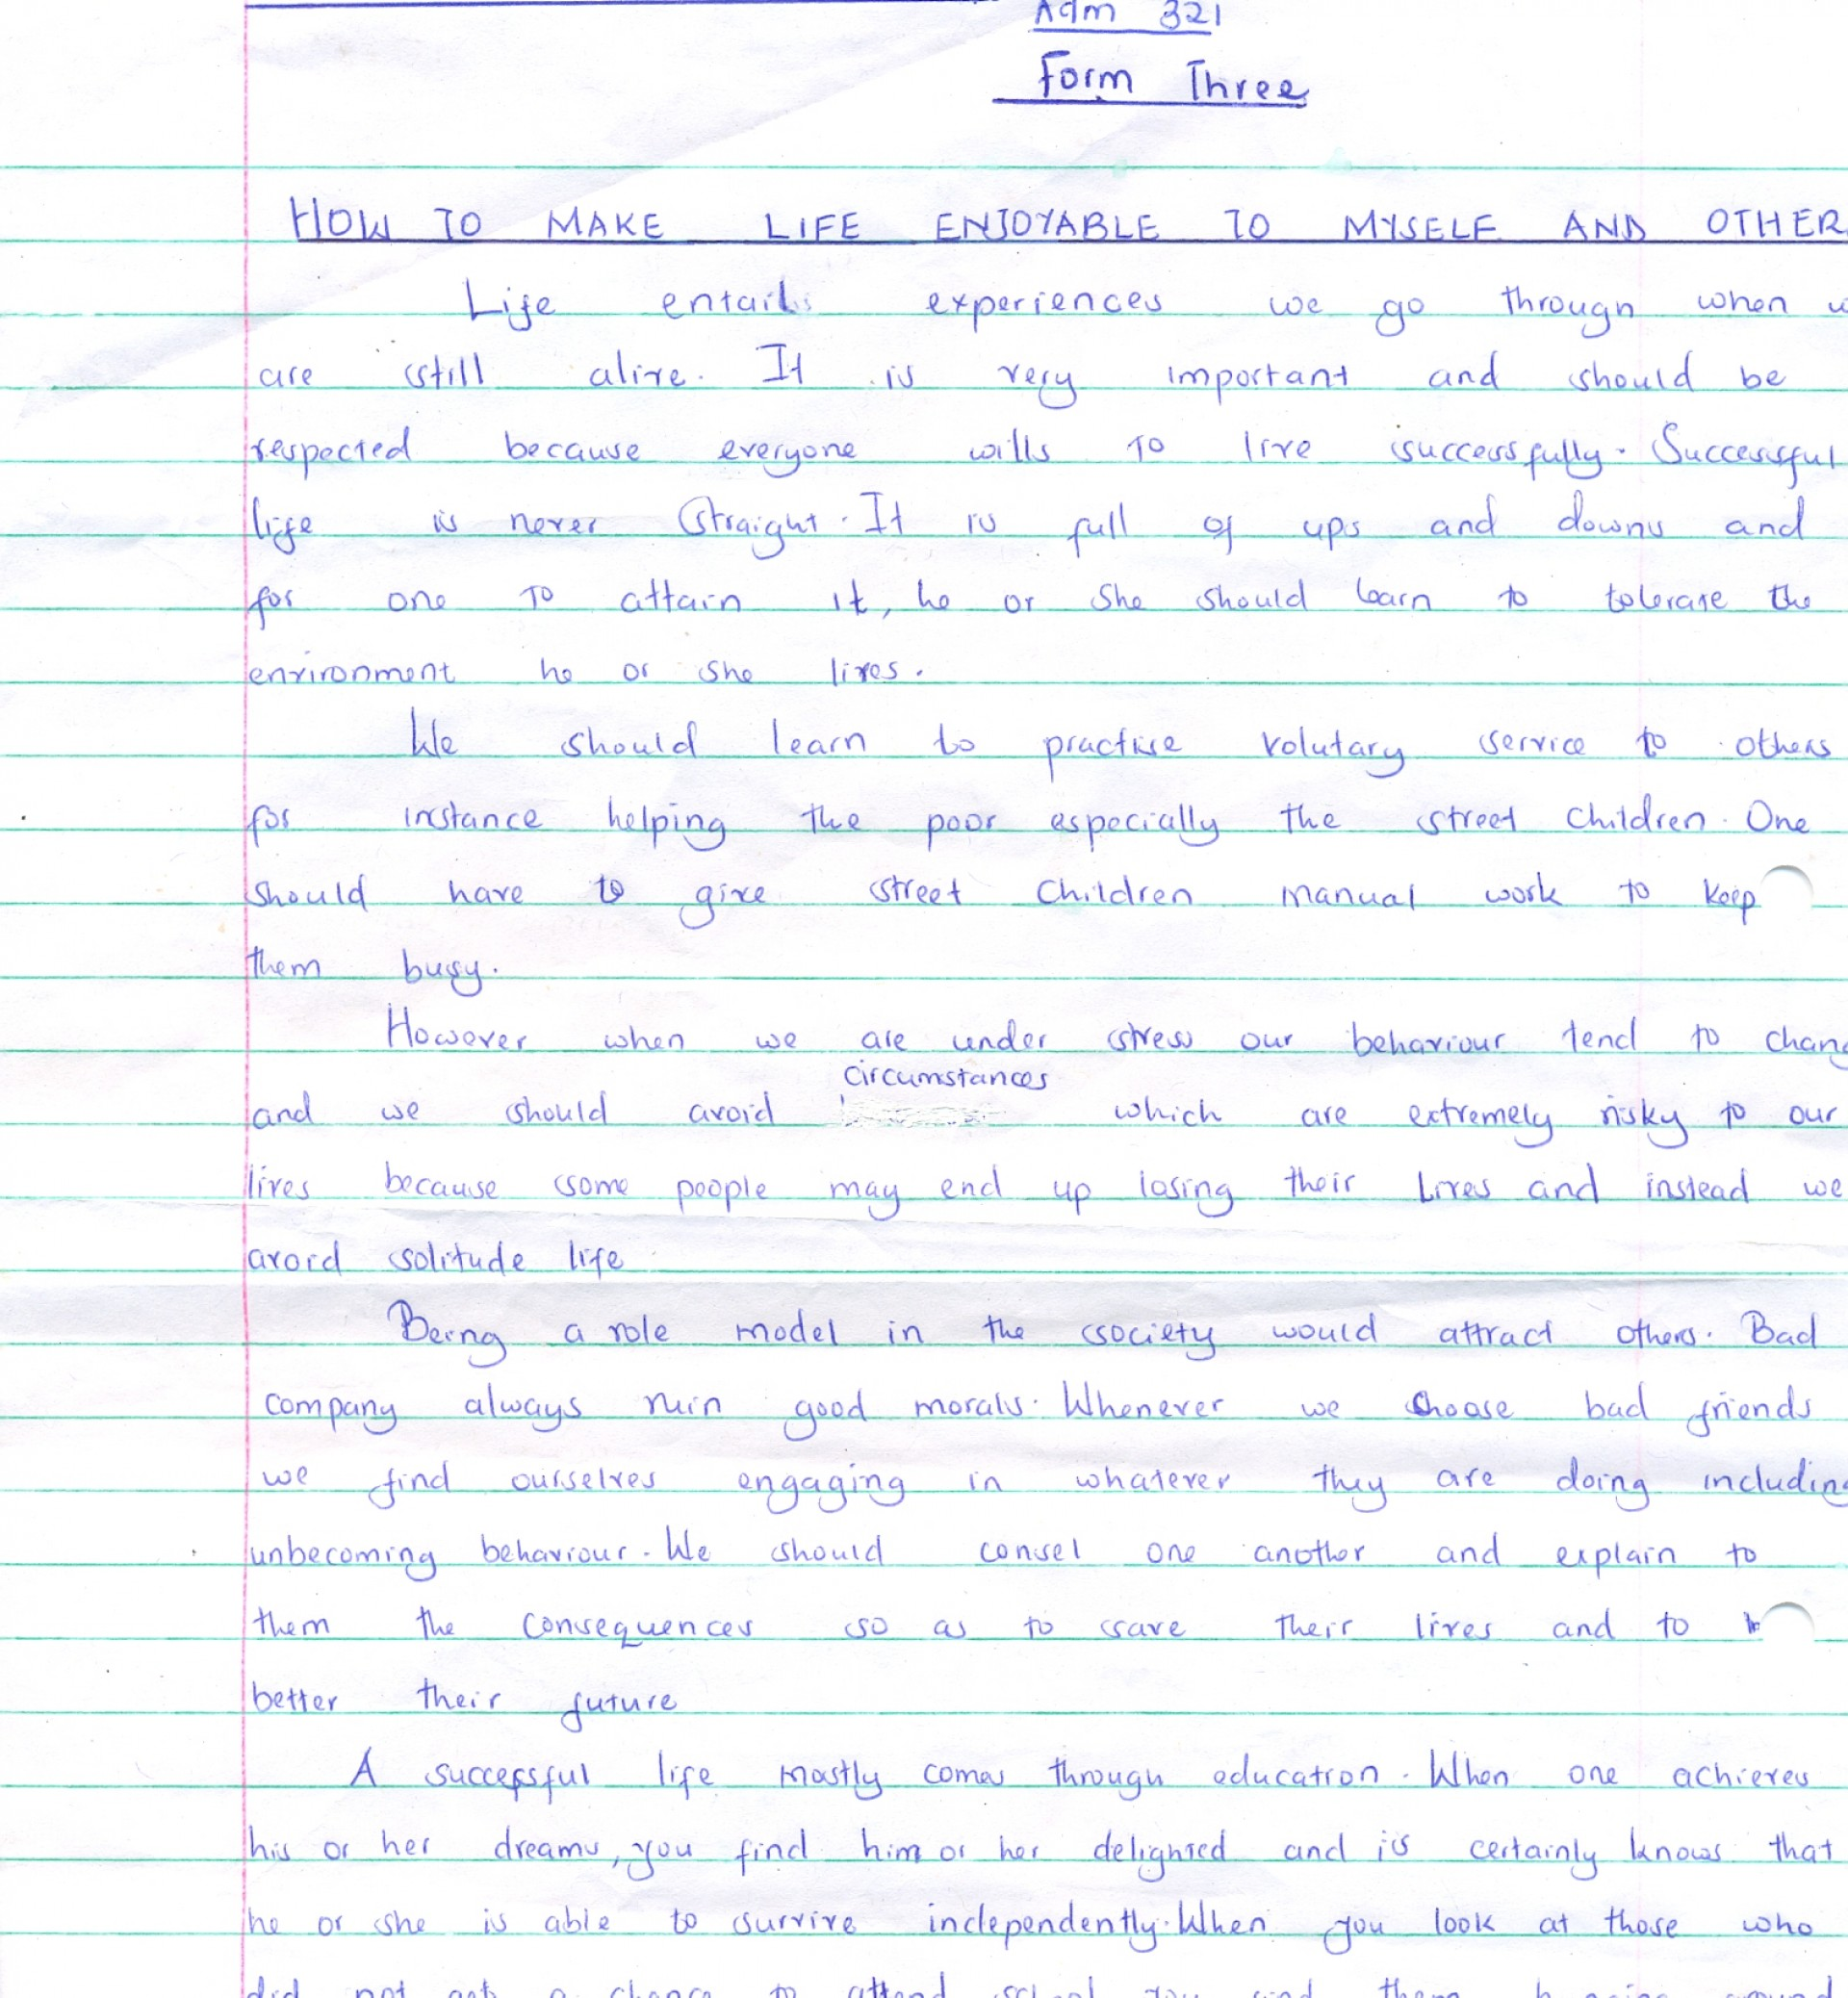 023 English Essay Topics Collection Of Solutions Terrorism On In Simple Introduction Dreaded Literature Question Paper For Class 10 Icse 2015 Maharashtra Board 1920